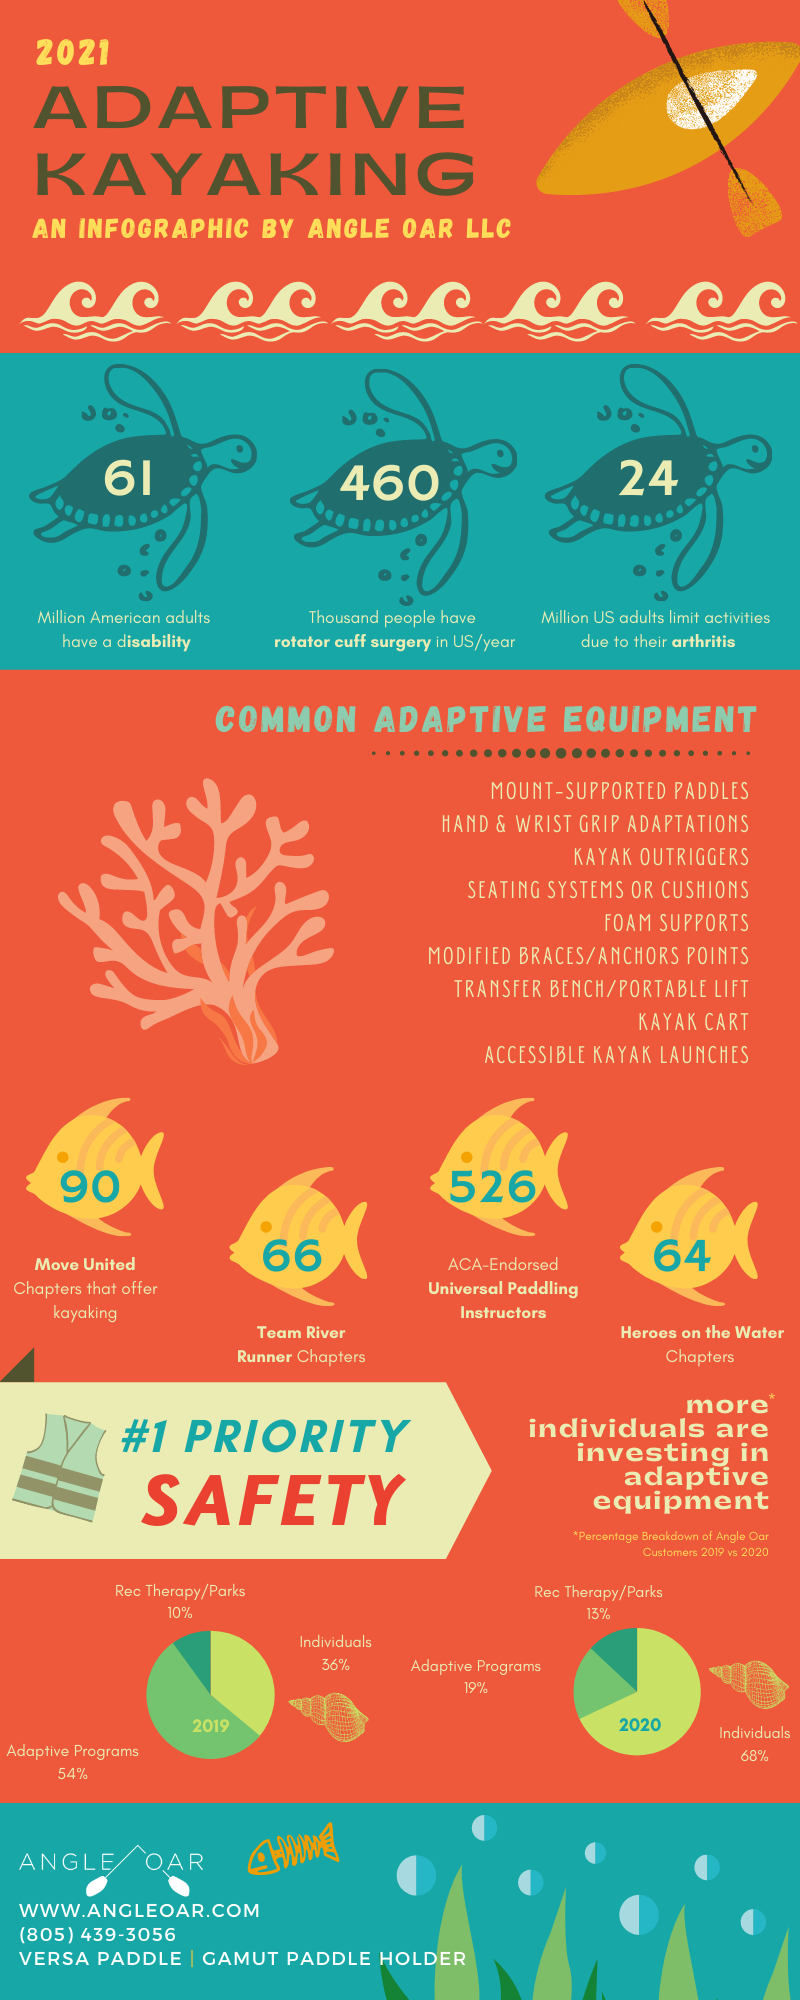 Adaptive Kayaking Facts and Figures